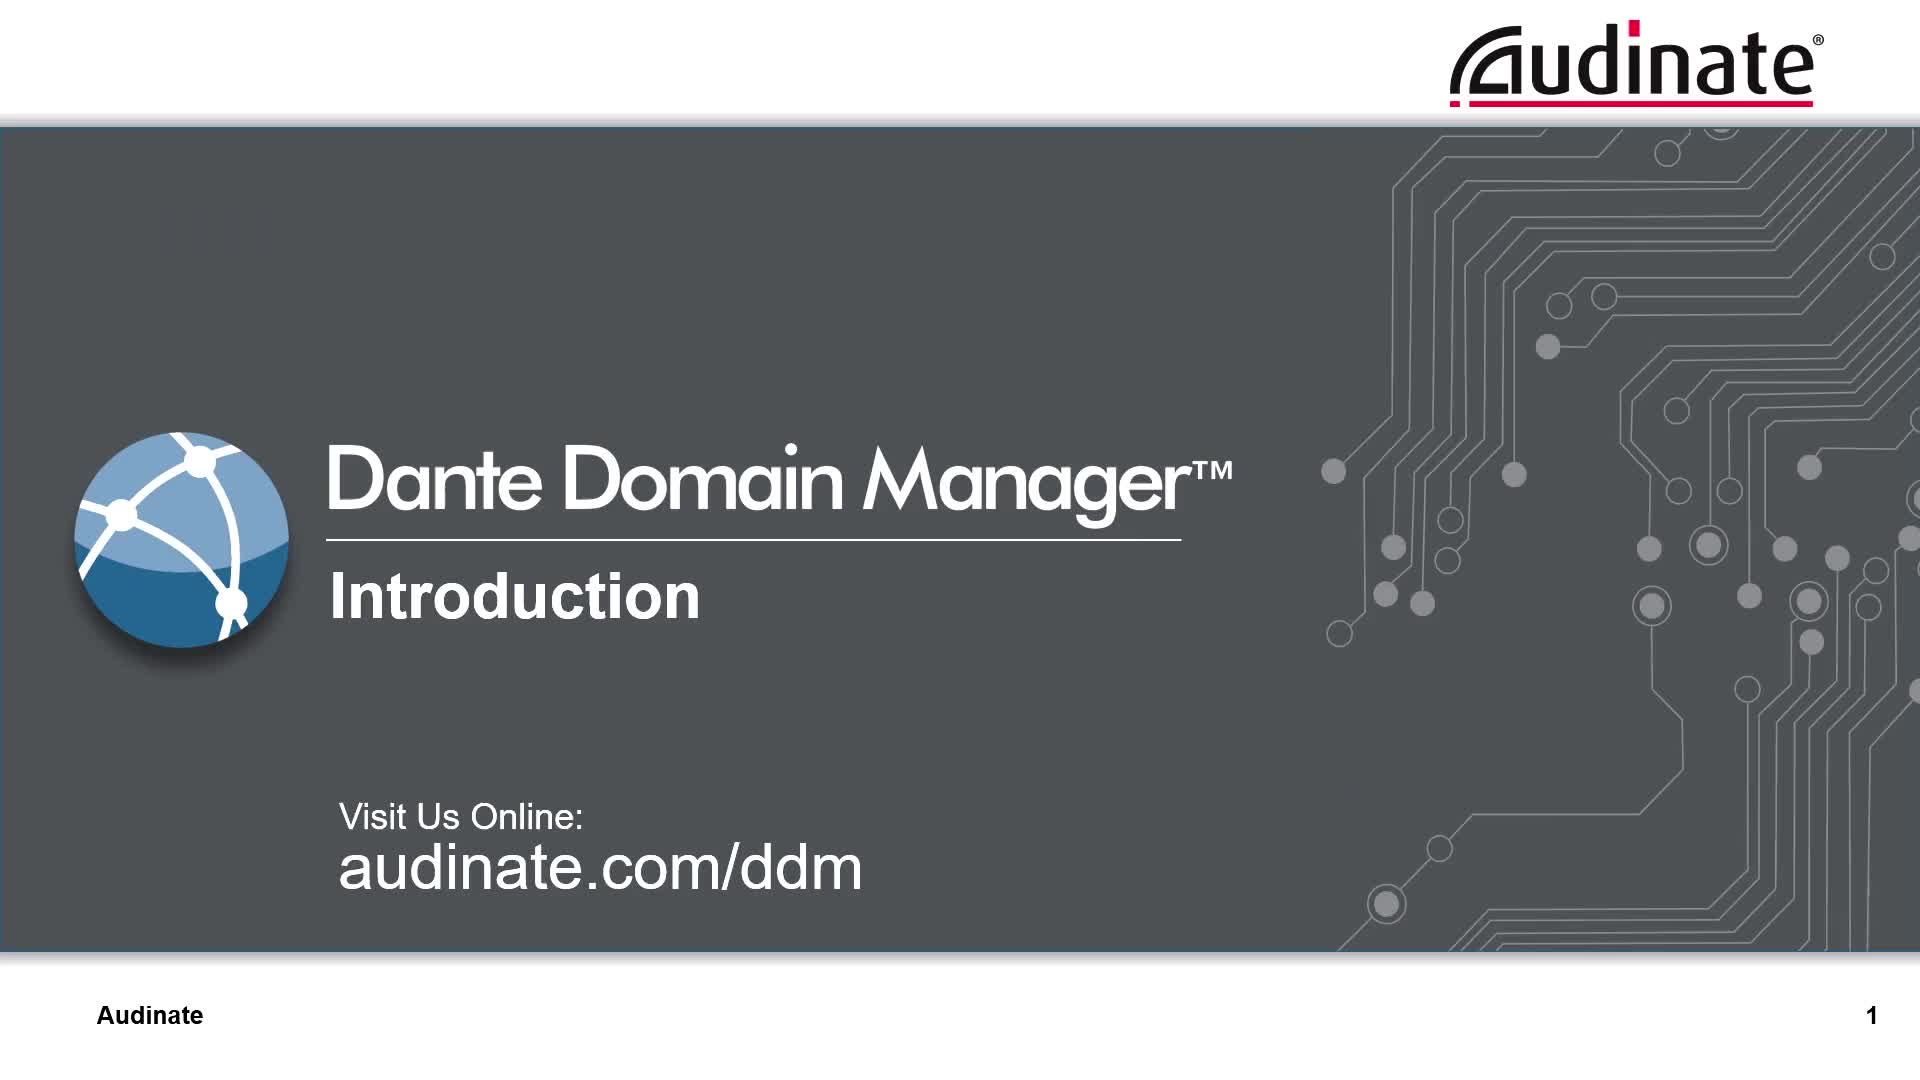 Introduction of Dante Domain Manger